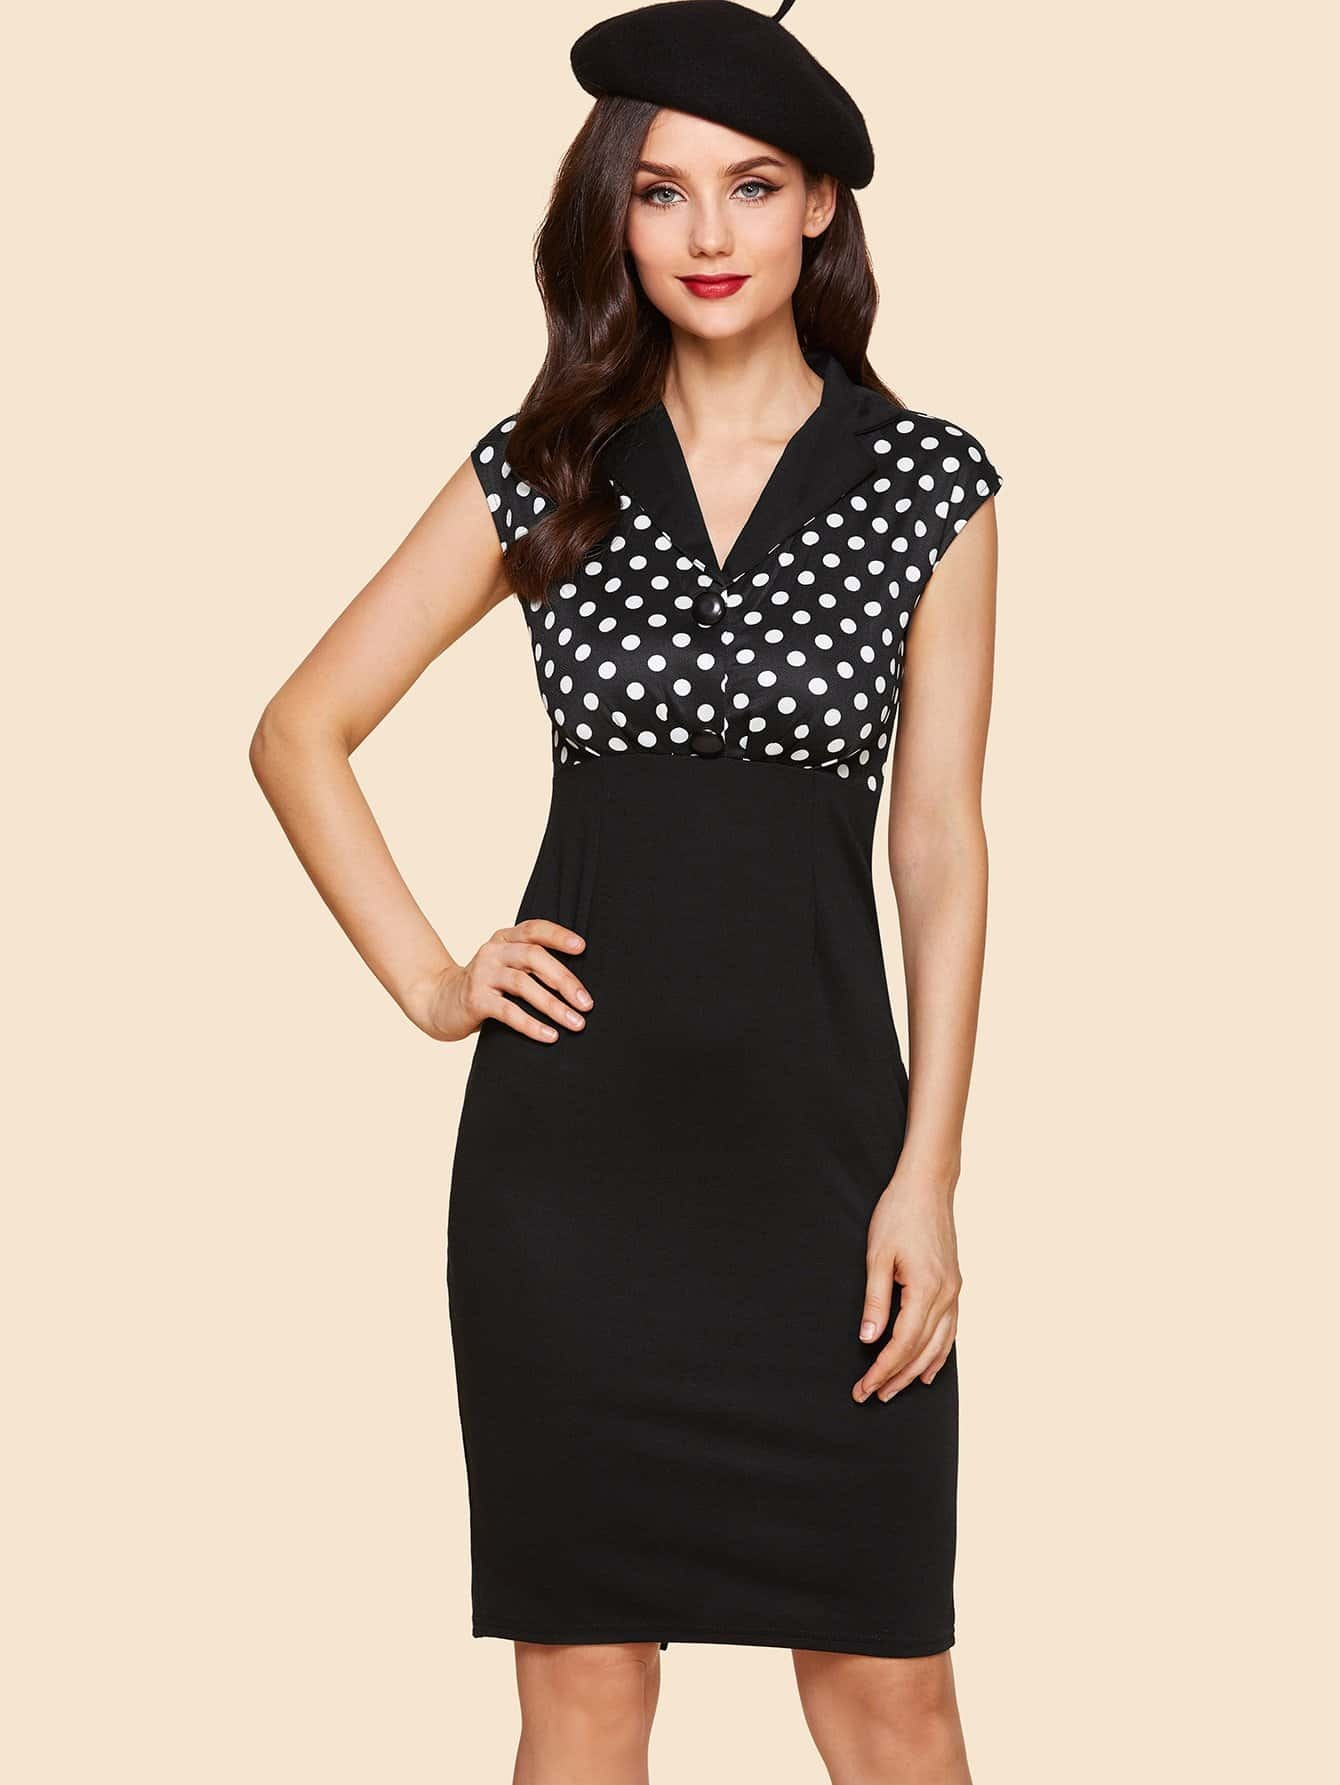 Polka Dot Slit Hem Contrast Dress polka dot slit hem contrast dress